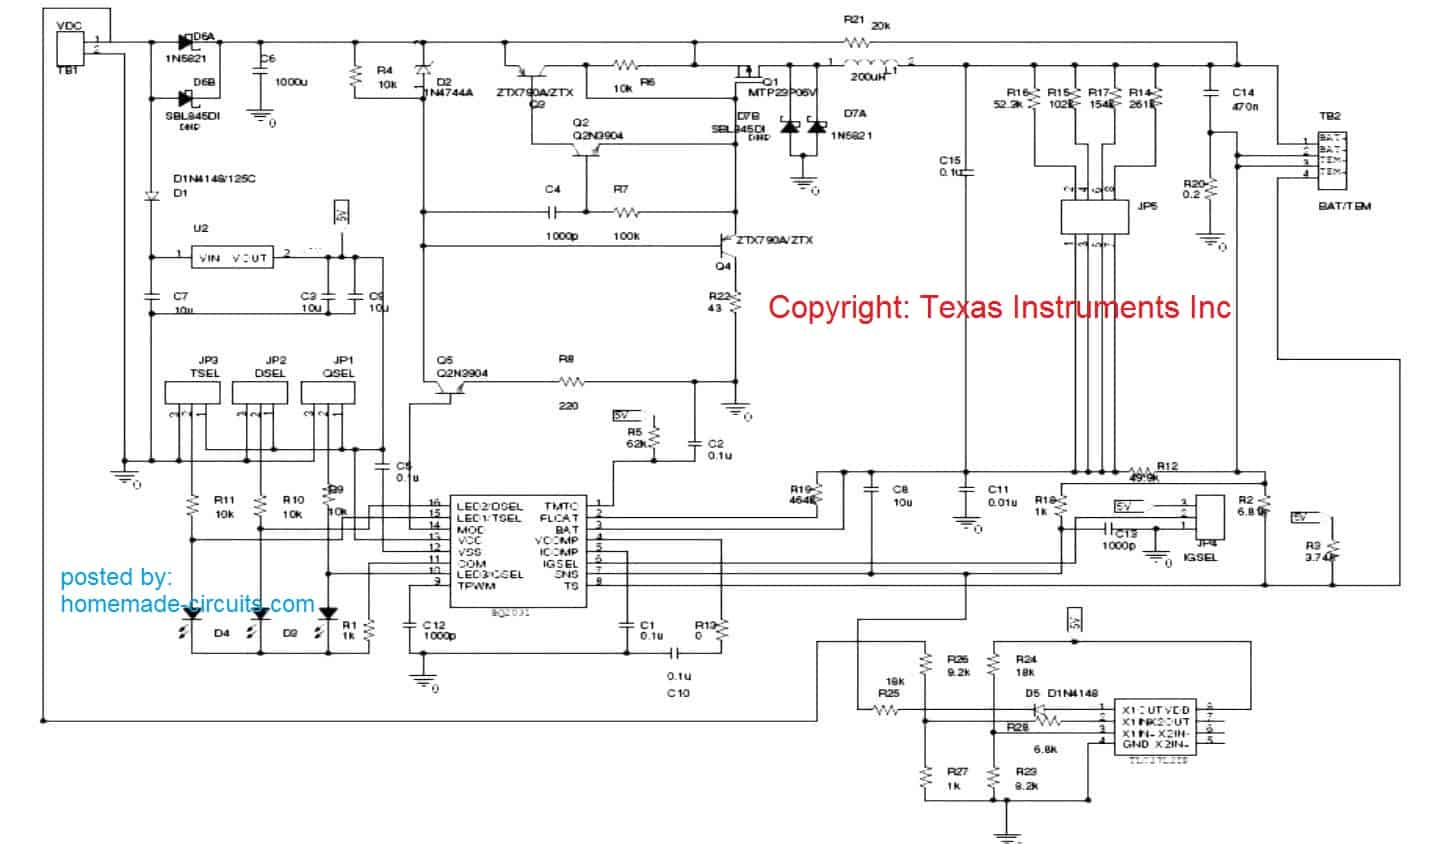 charger circuit besides mppt solar charge controller circuit diagrambattery wiring furthermore solar battery charger circuit diagram charger circuit besides mppt solar charge controller circuit diagram